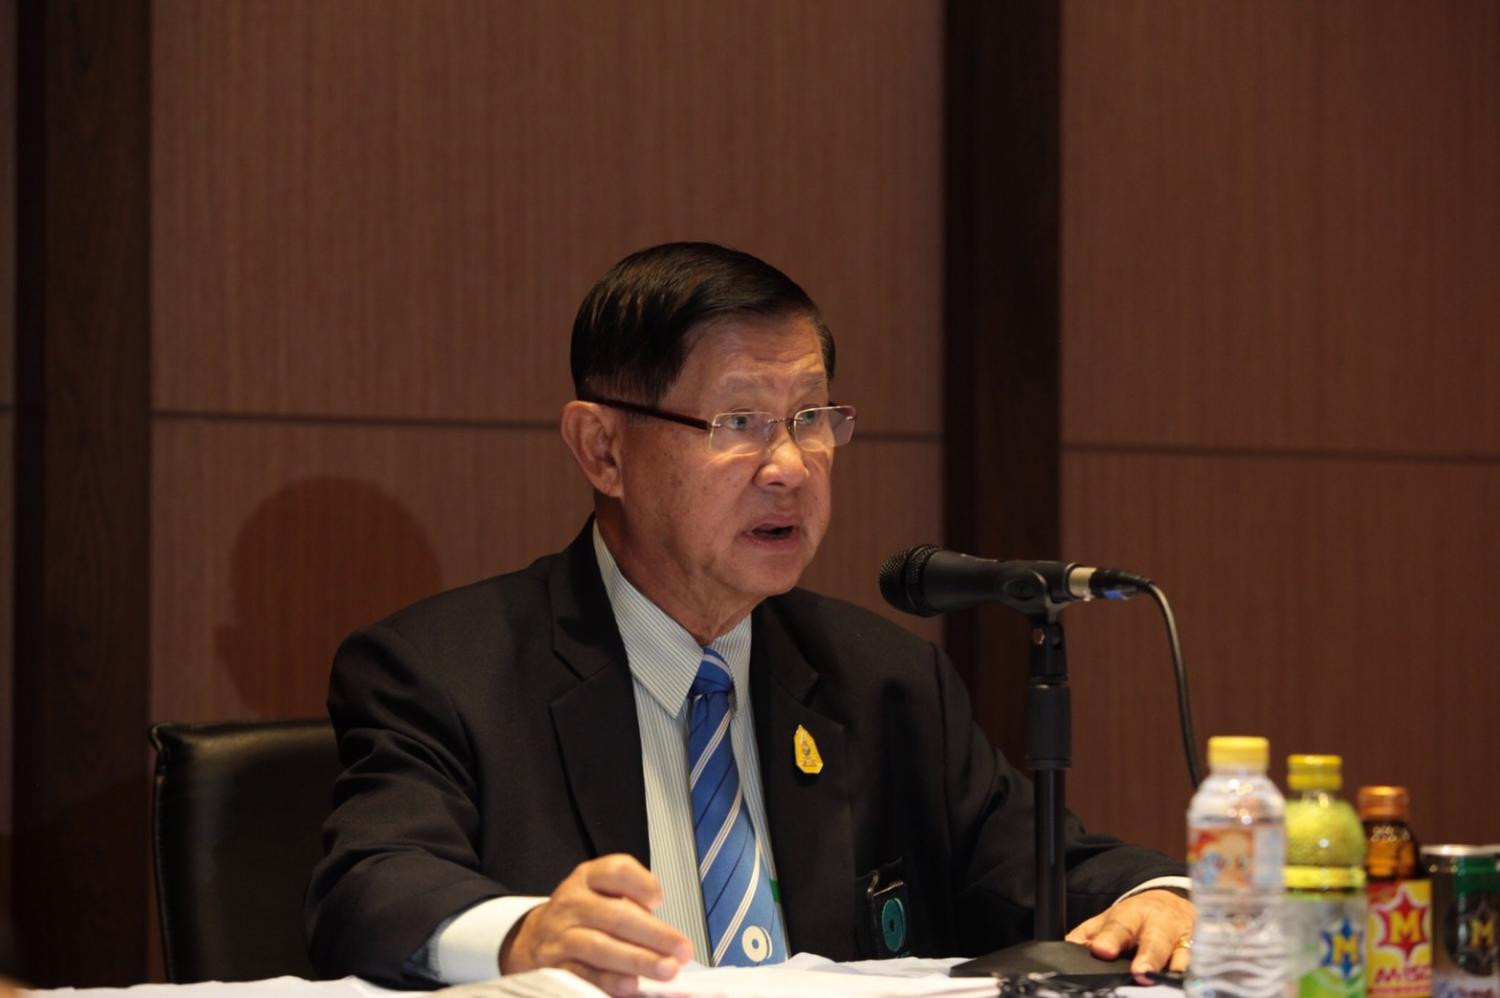 Thailand's Intarat Yodbangtoey has withdrawn from the IWF elections following his country's poor record on doping ©IWF